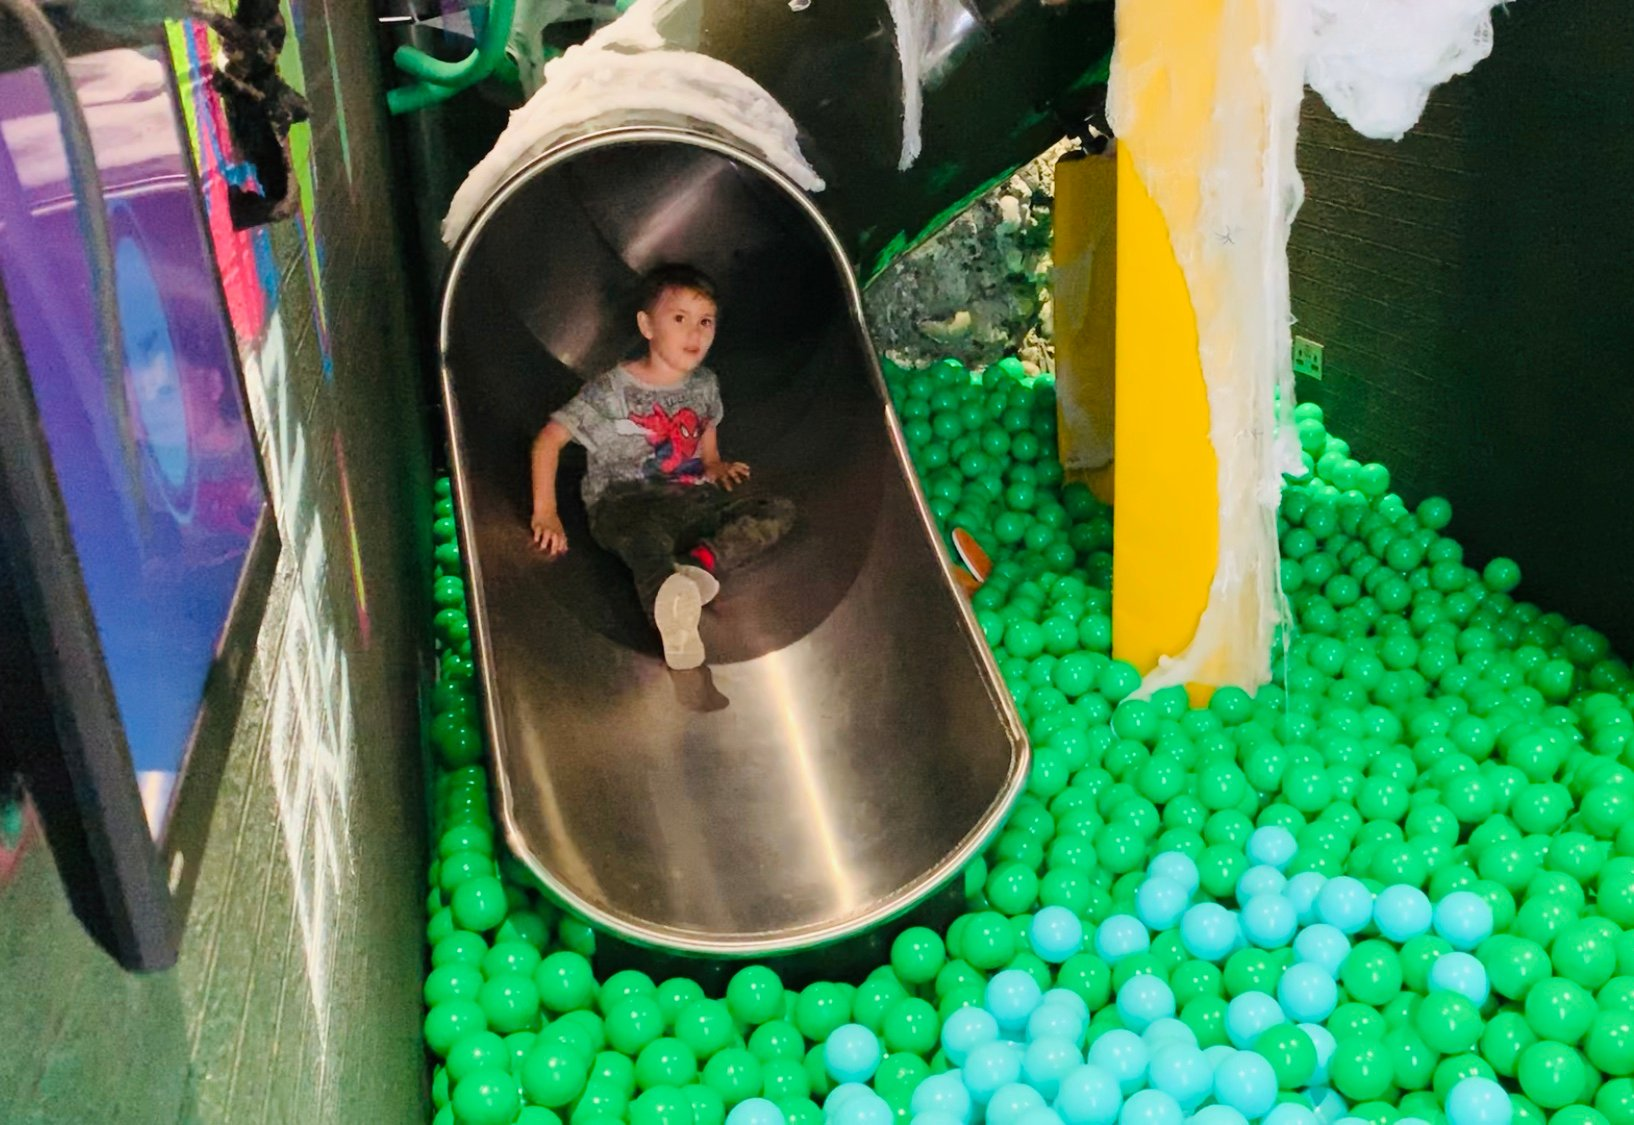 A child going down a slide in Yorkshire Waters brand activation